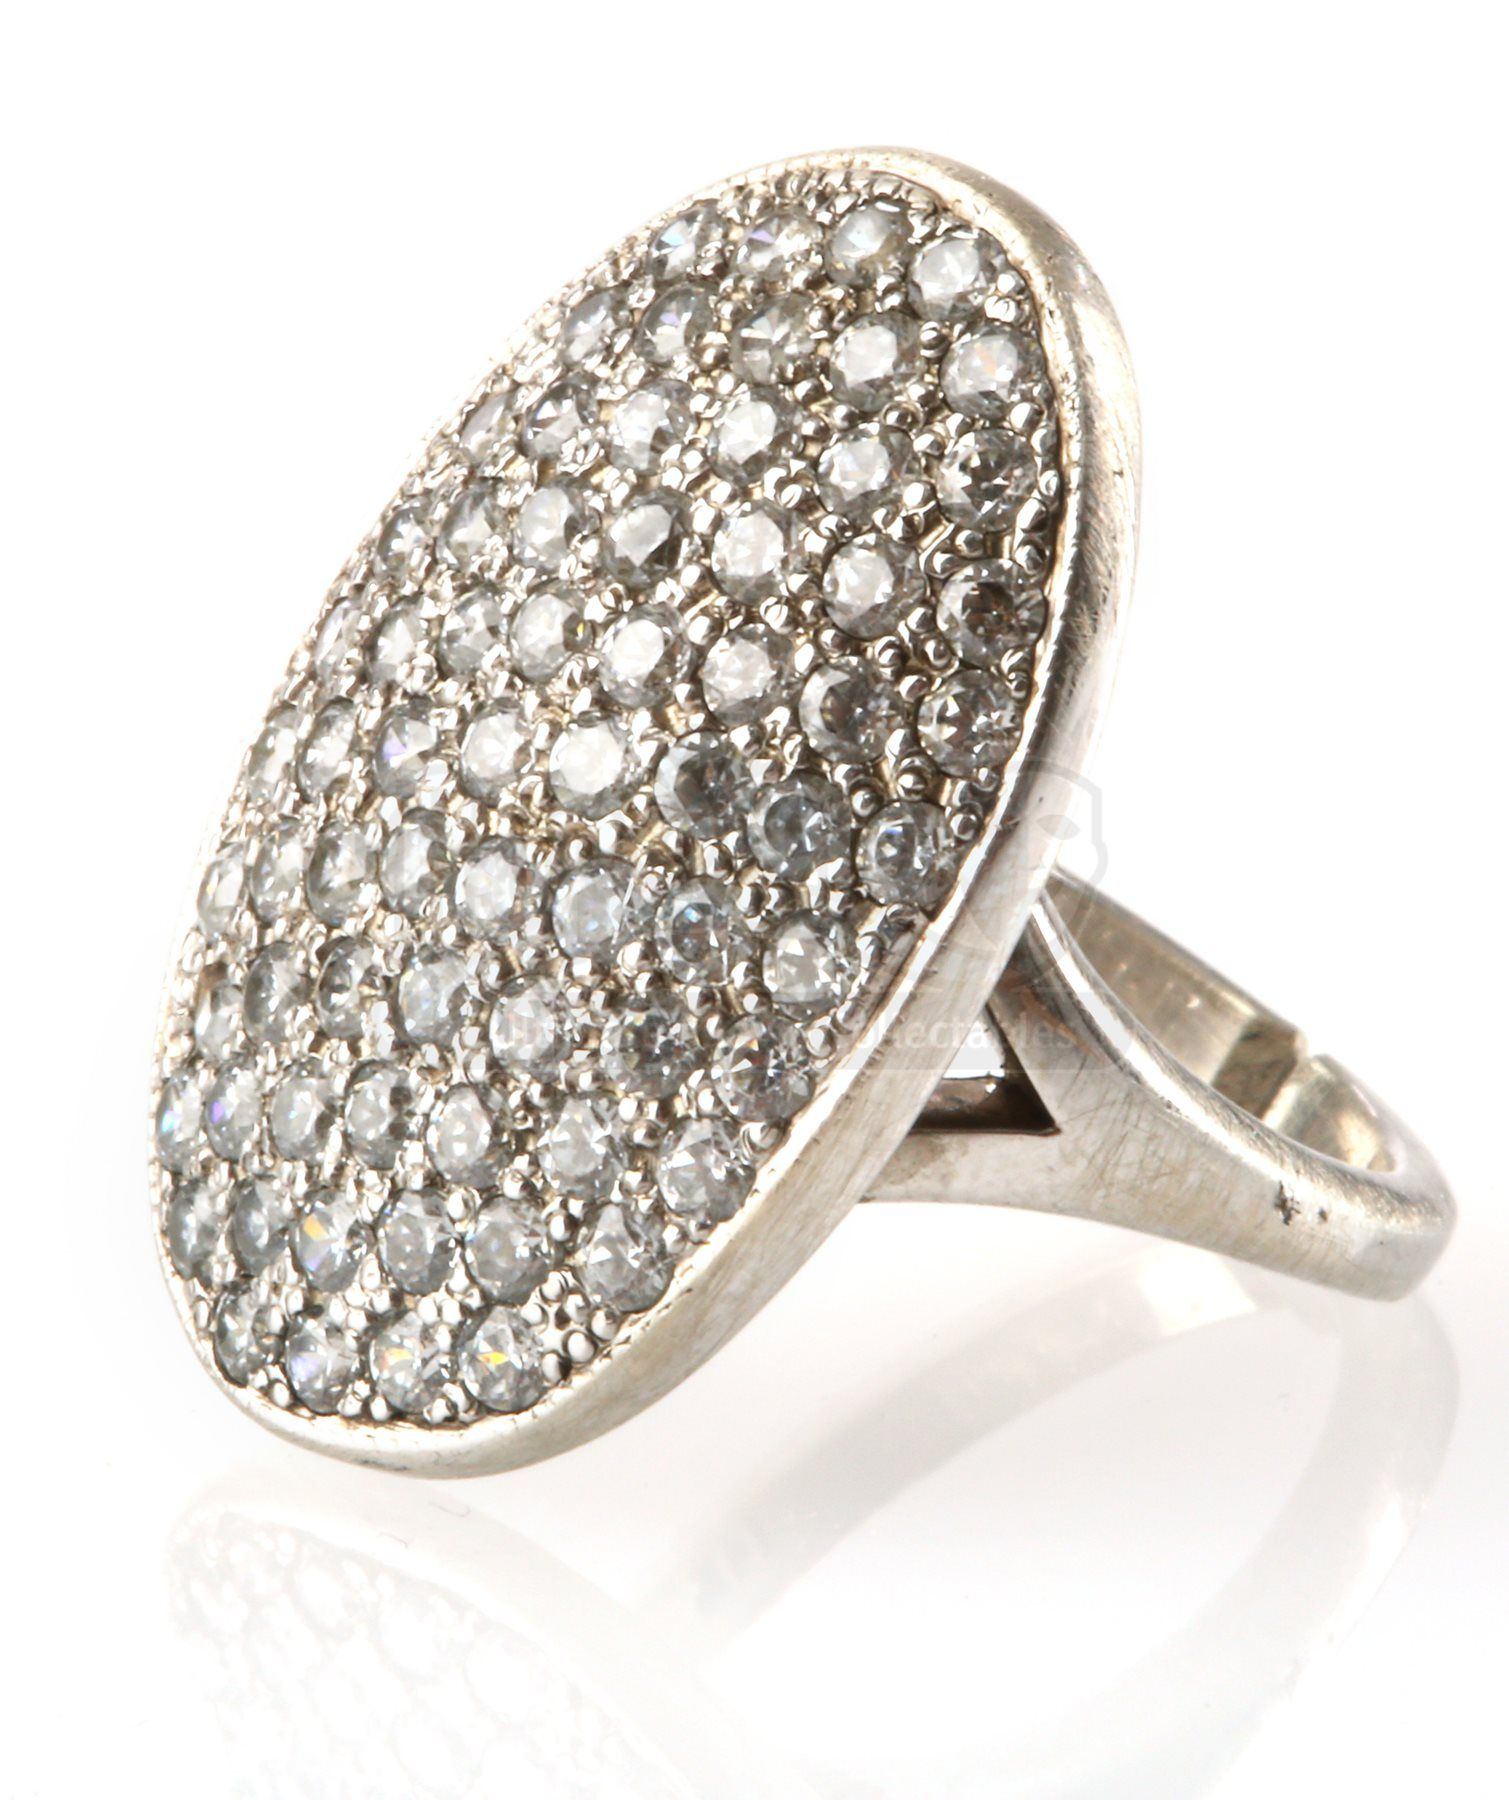 Bella Swan's Engagement Ring - Current price: $1500